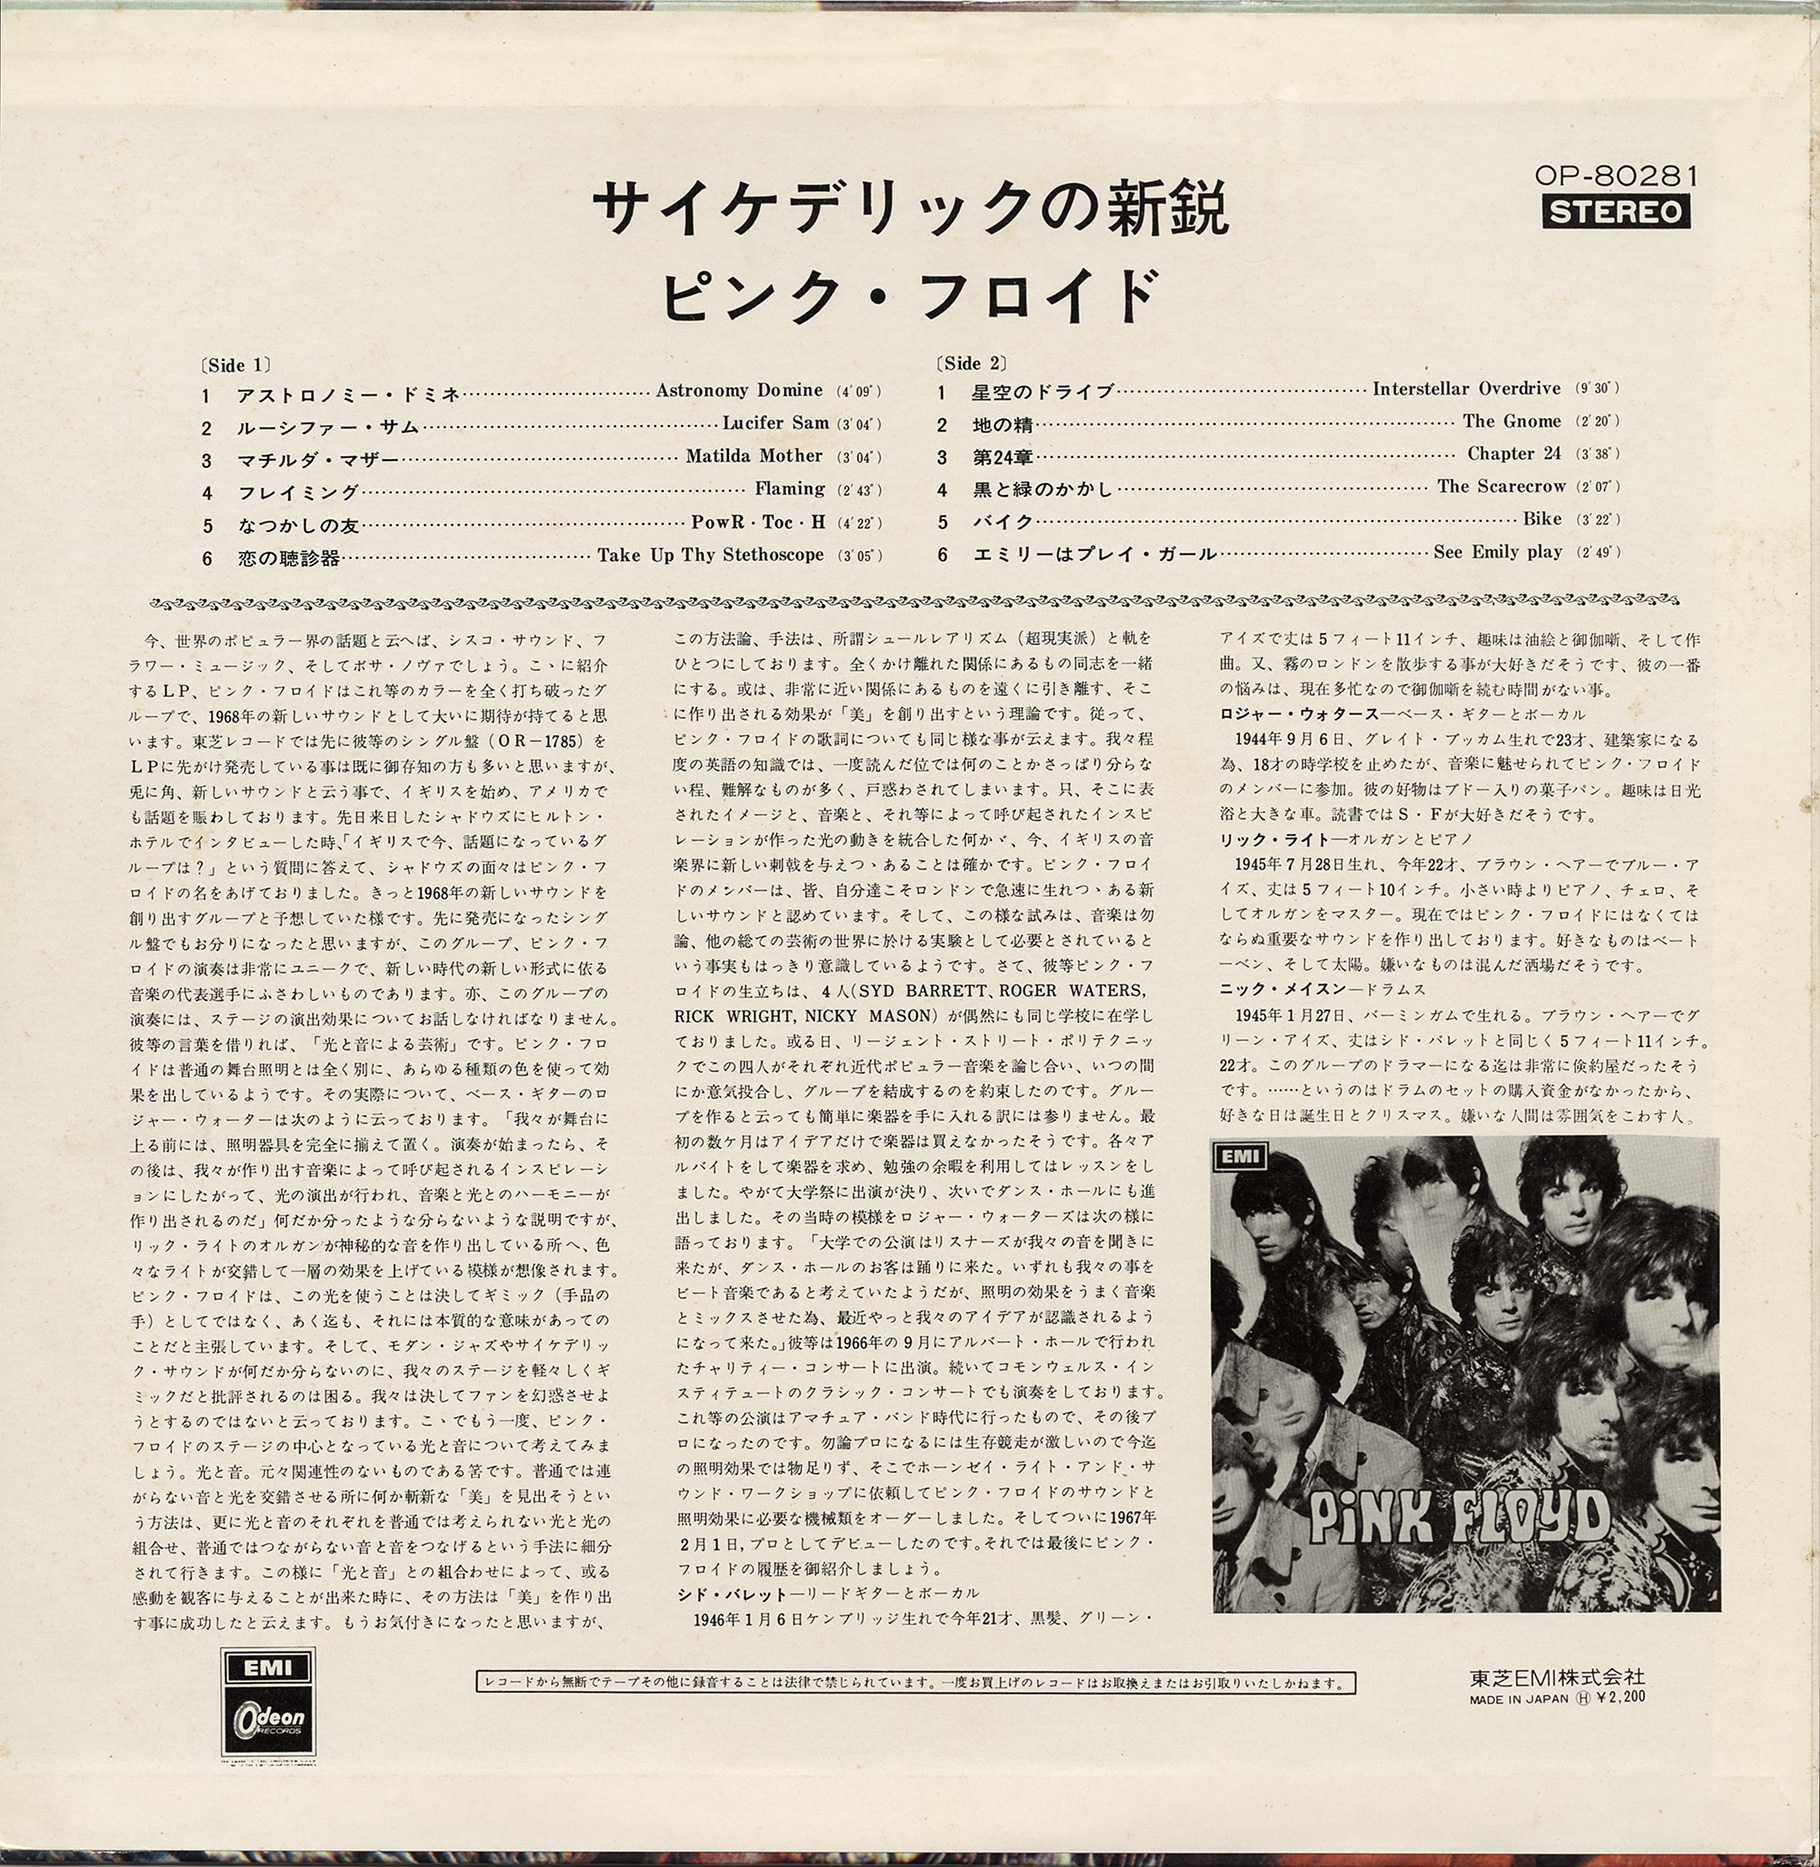 Pink Floyd Archives-Japanese LP Discography